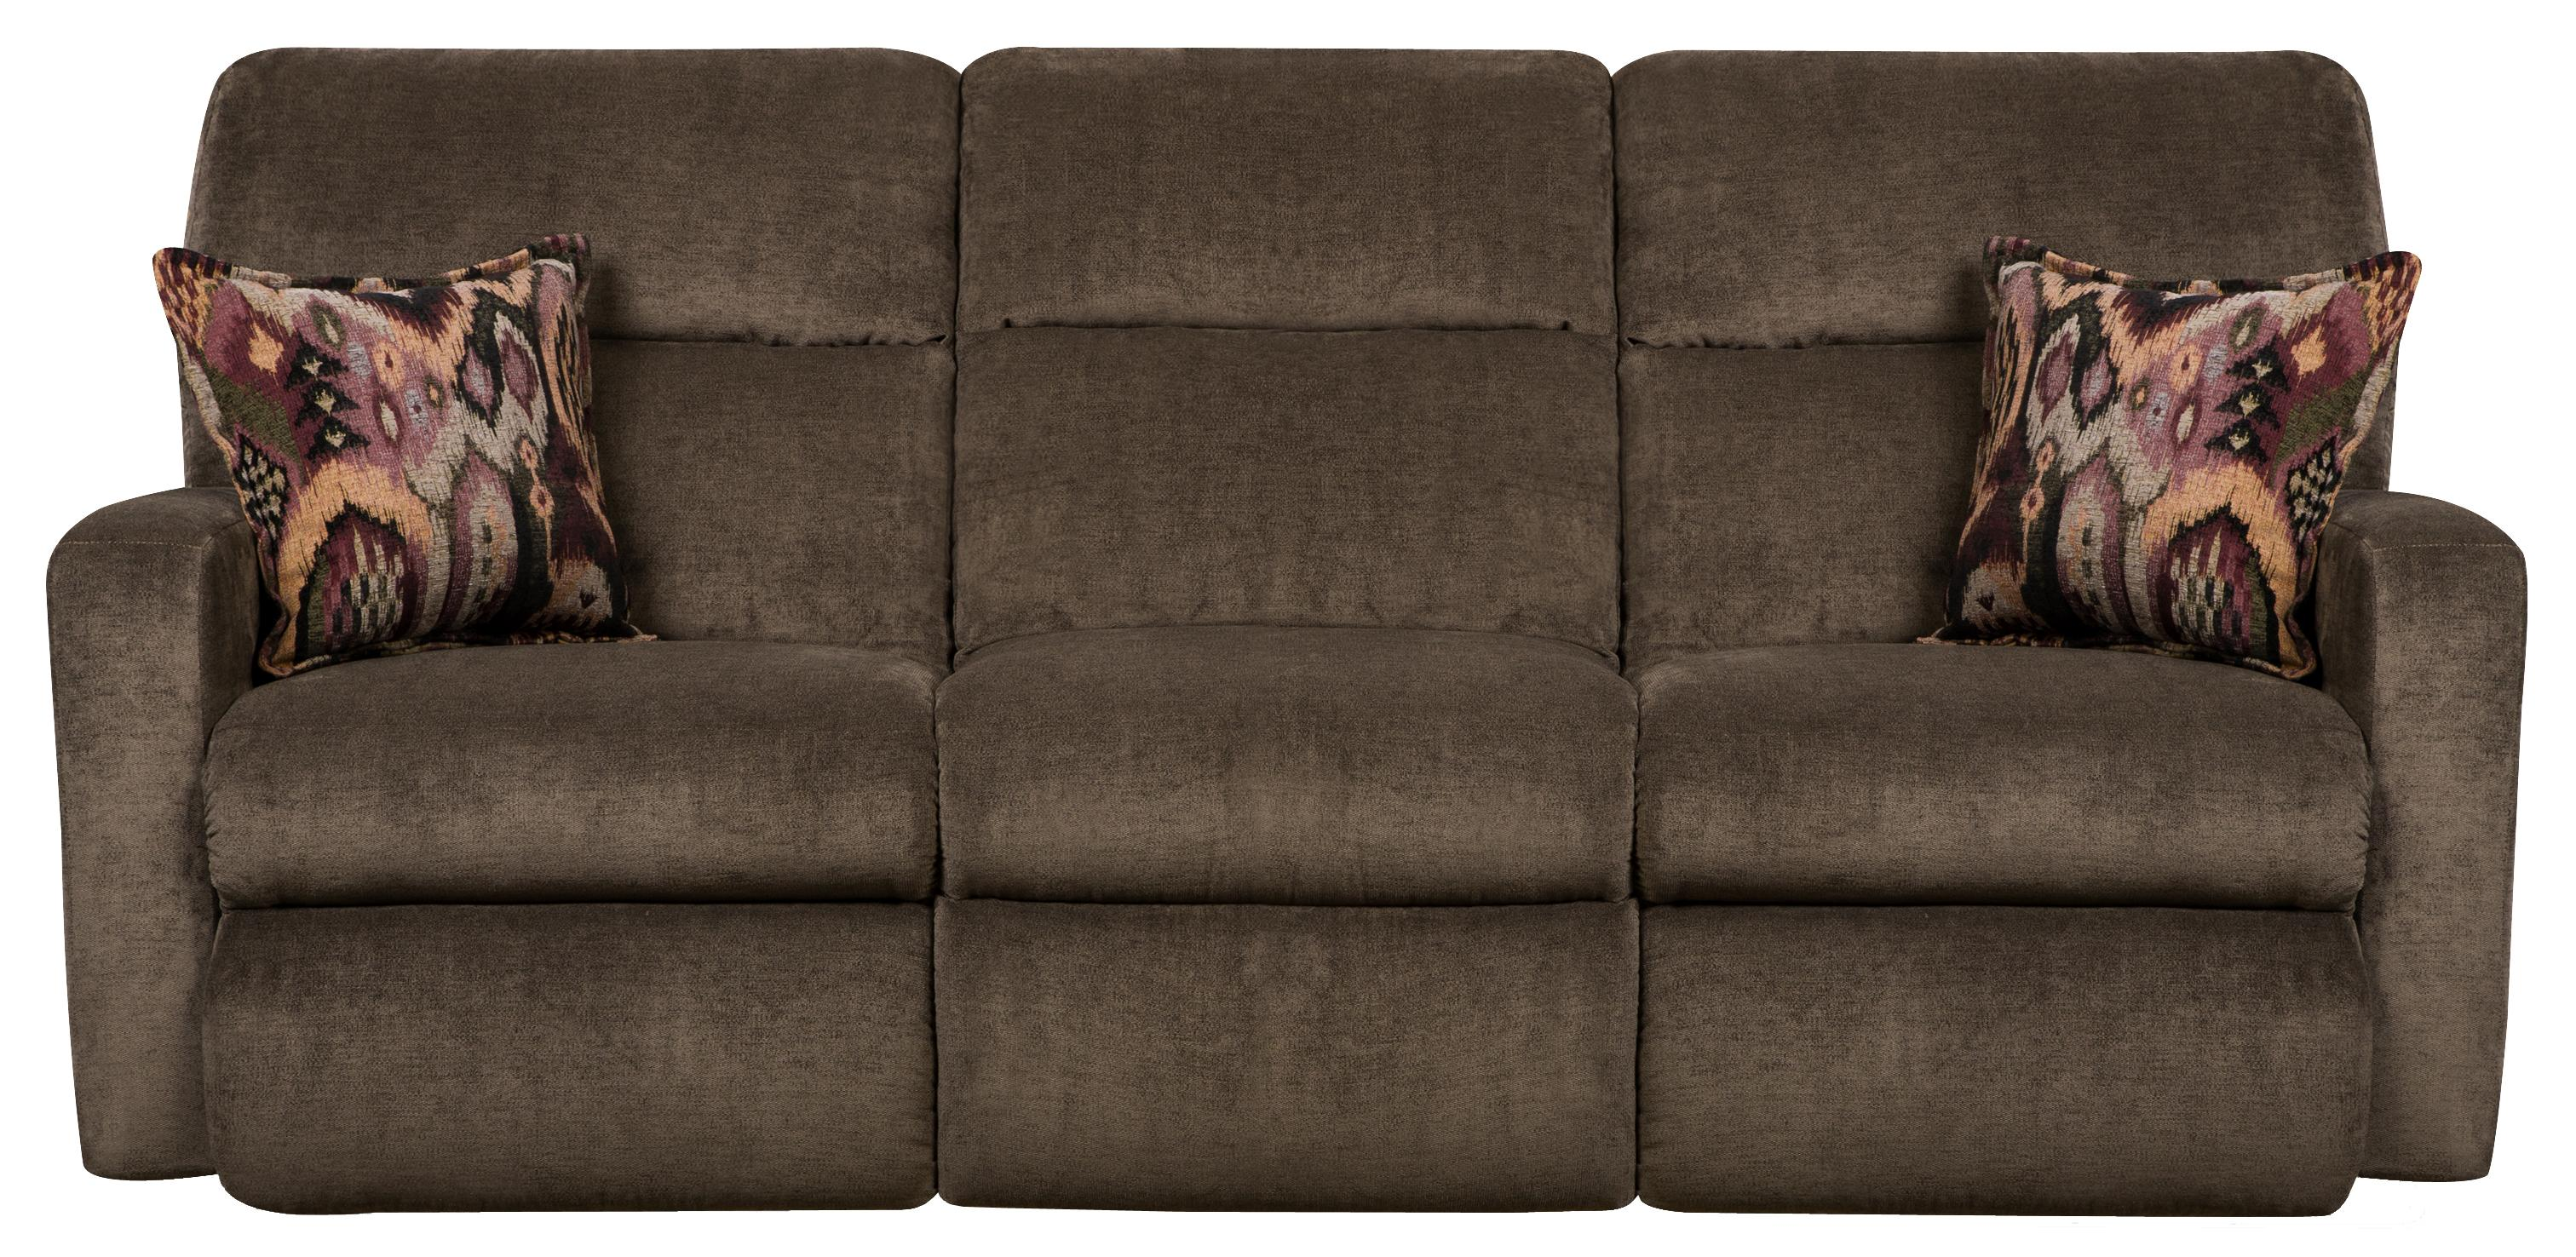 Attirant Southern Motion Savannah Double Reclining Sofa   Item Number: 702 32 F